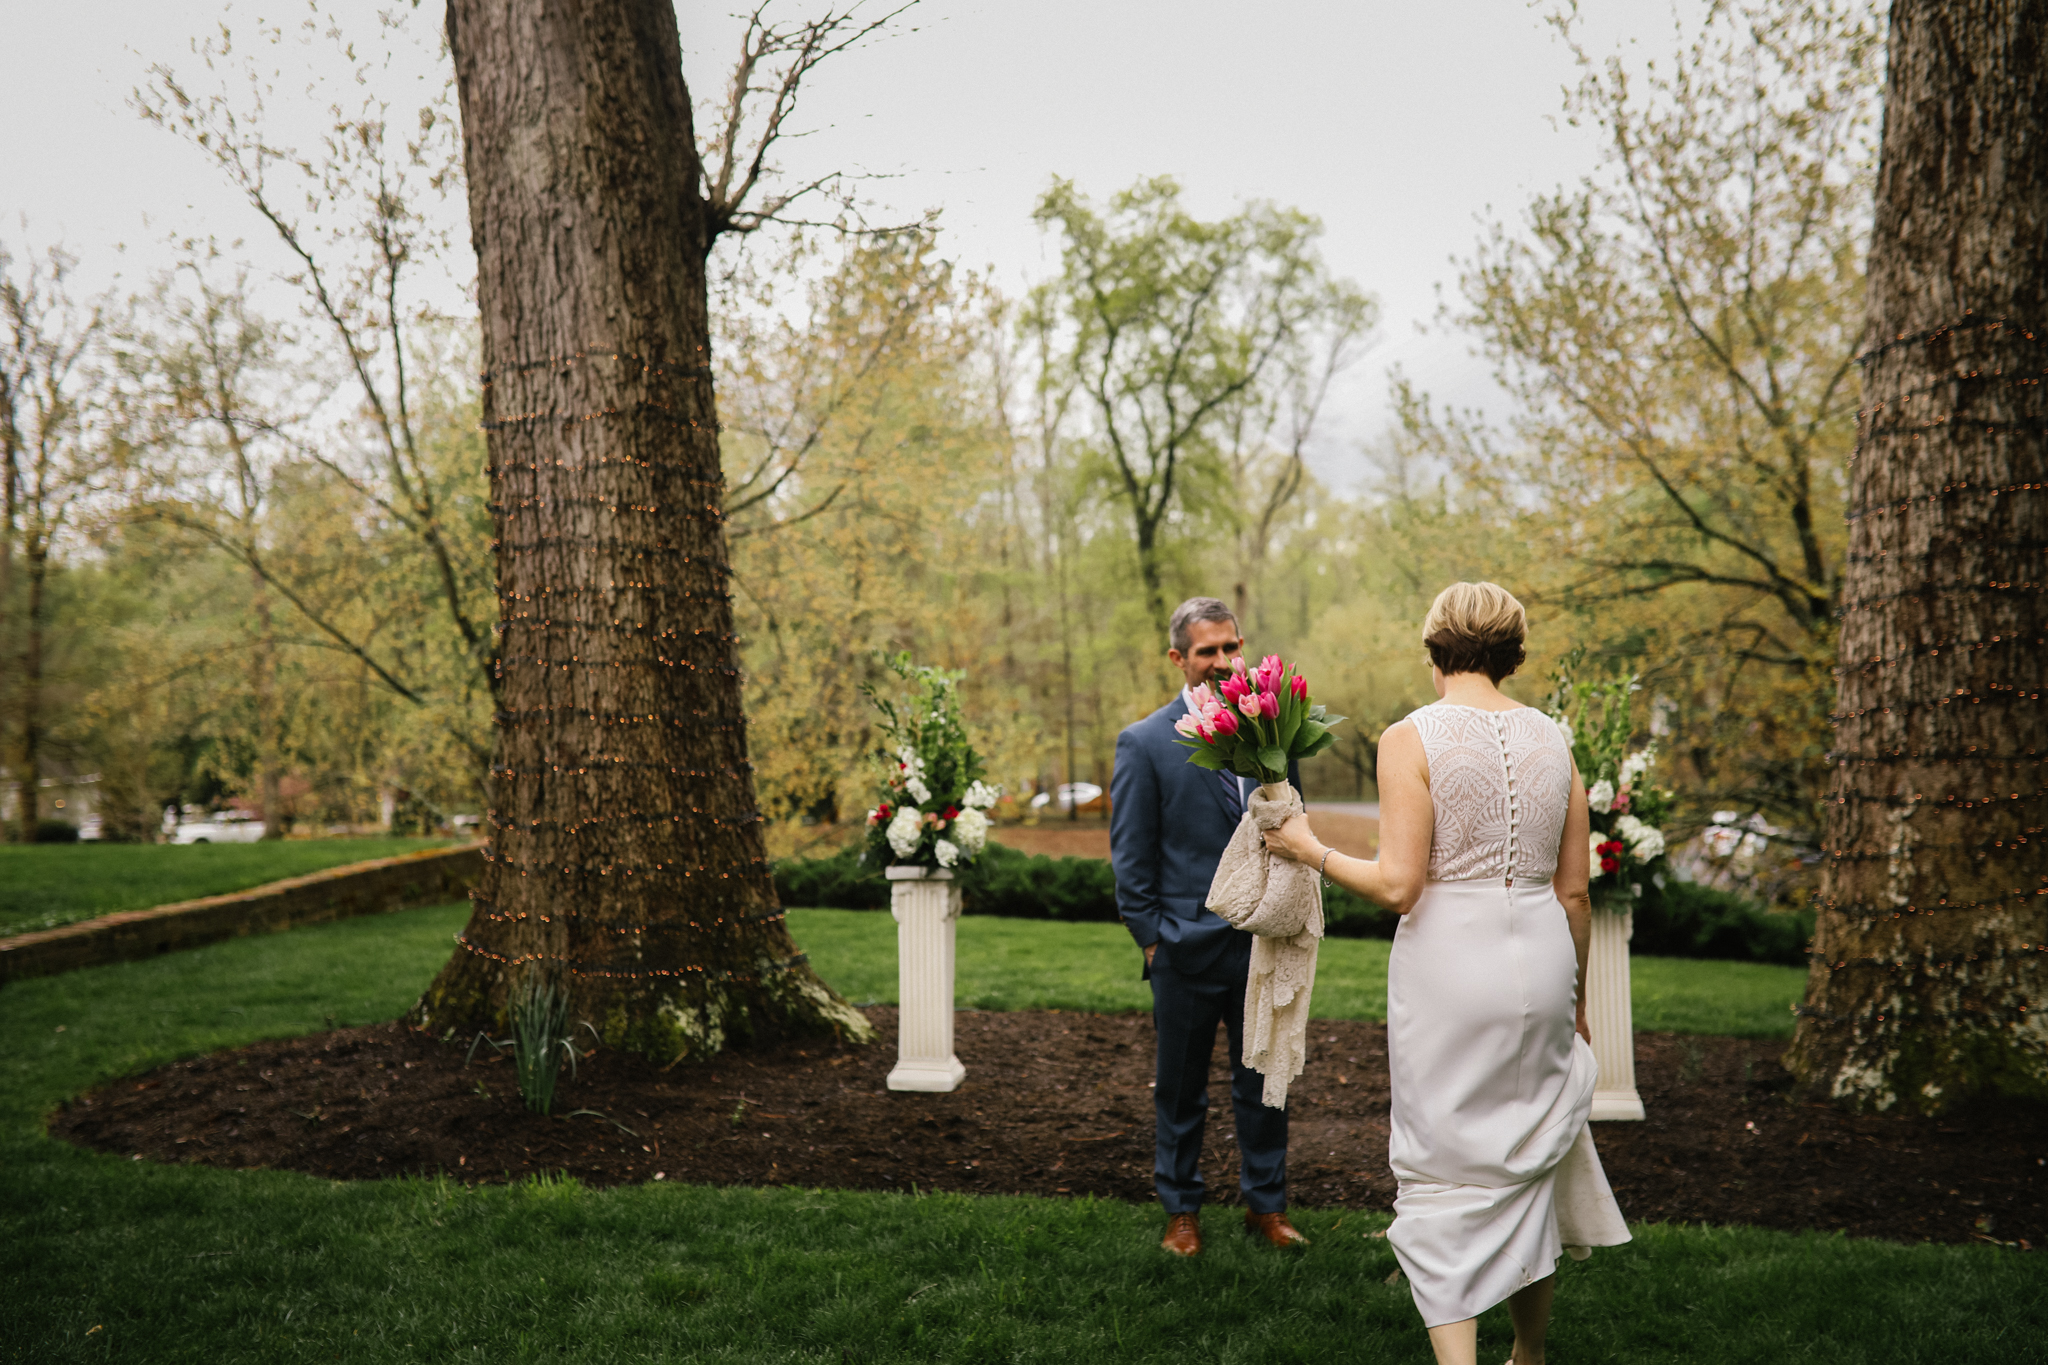 cook_wedding_richmond_virginia_rebecca_burt_photography-59.jpg